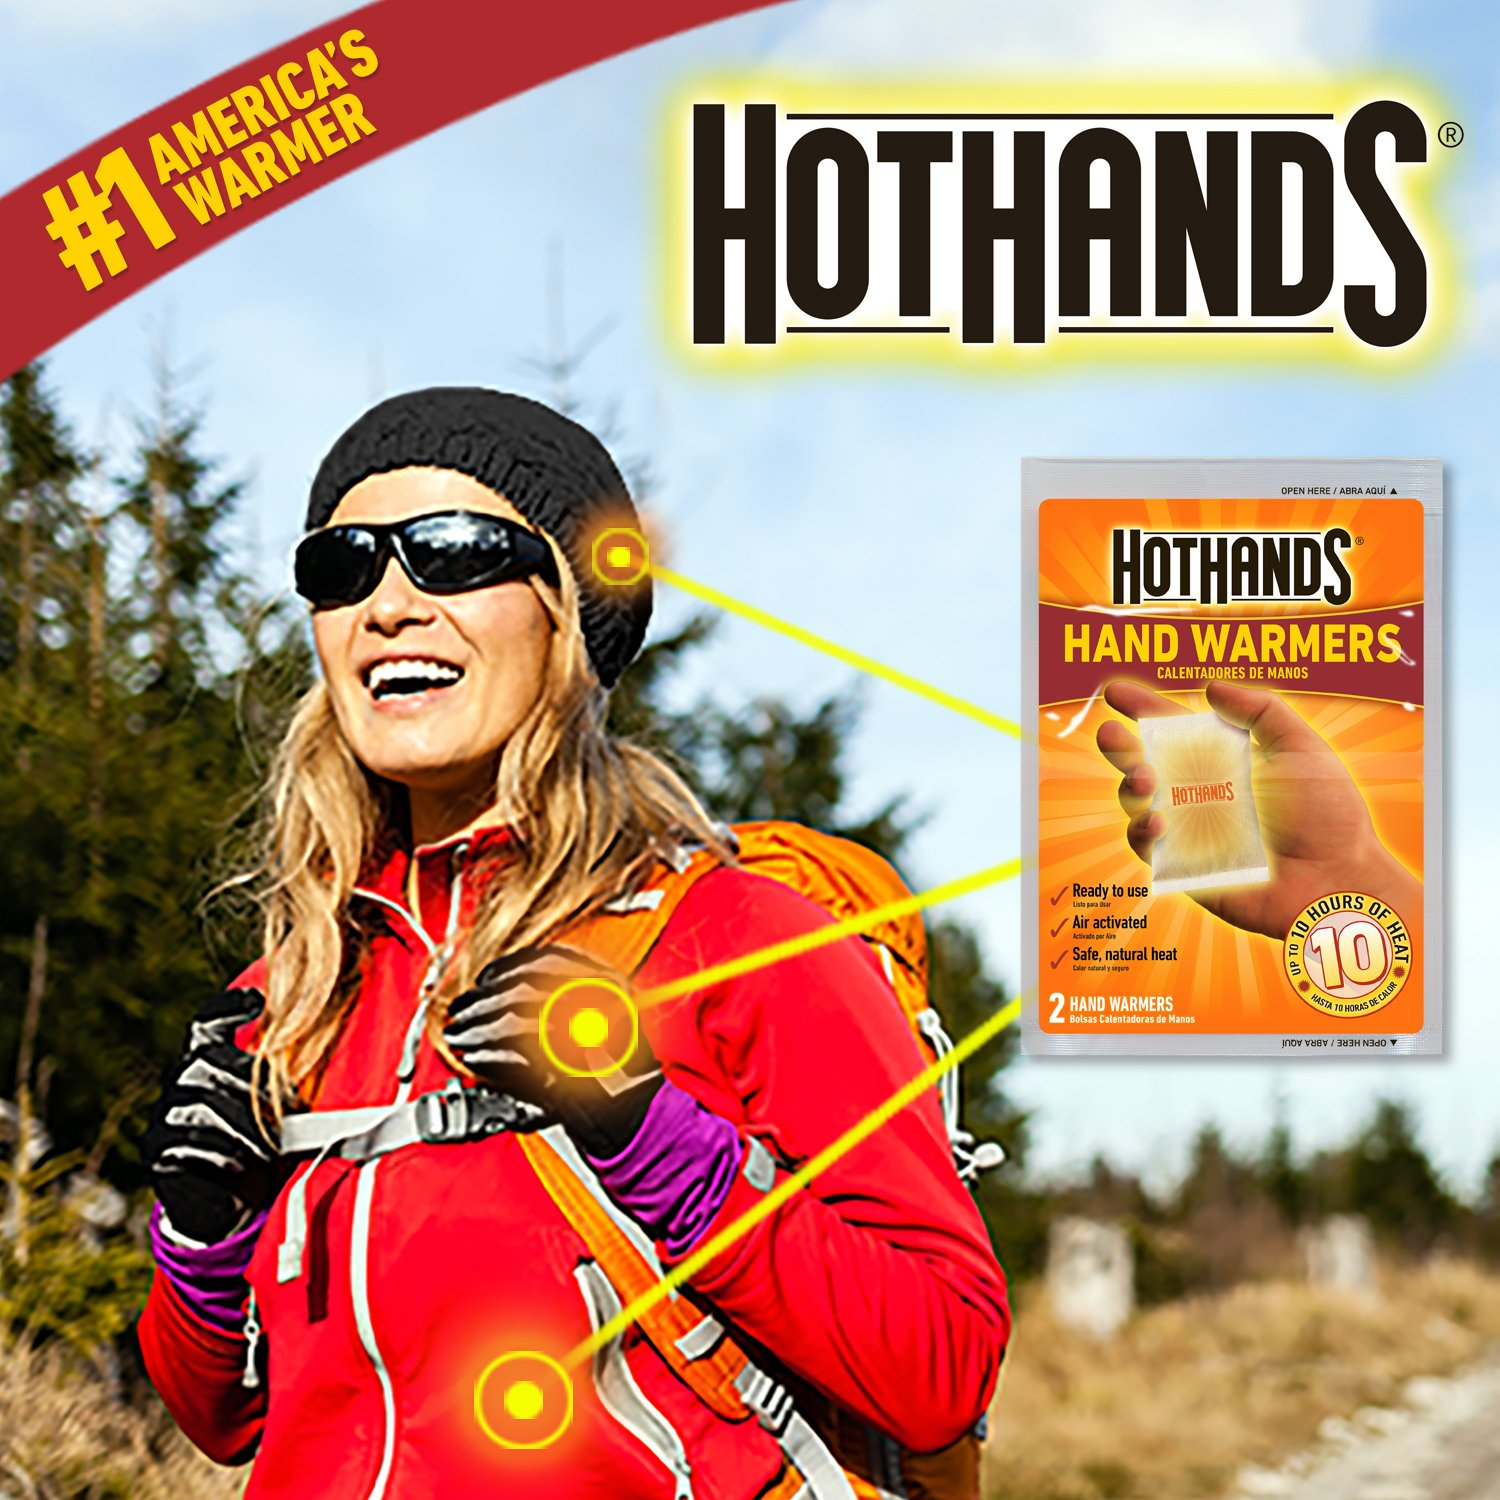 Up to 10 Hours of Heat 40 Pair HotHands Hand Warmers Long Lasting Safe Natural Odorless Air Activated Warmers